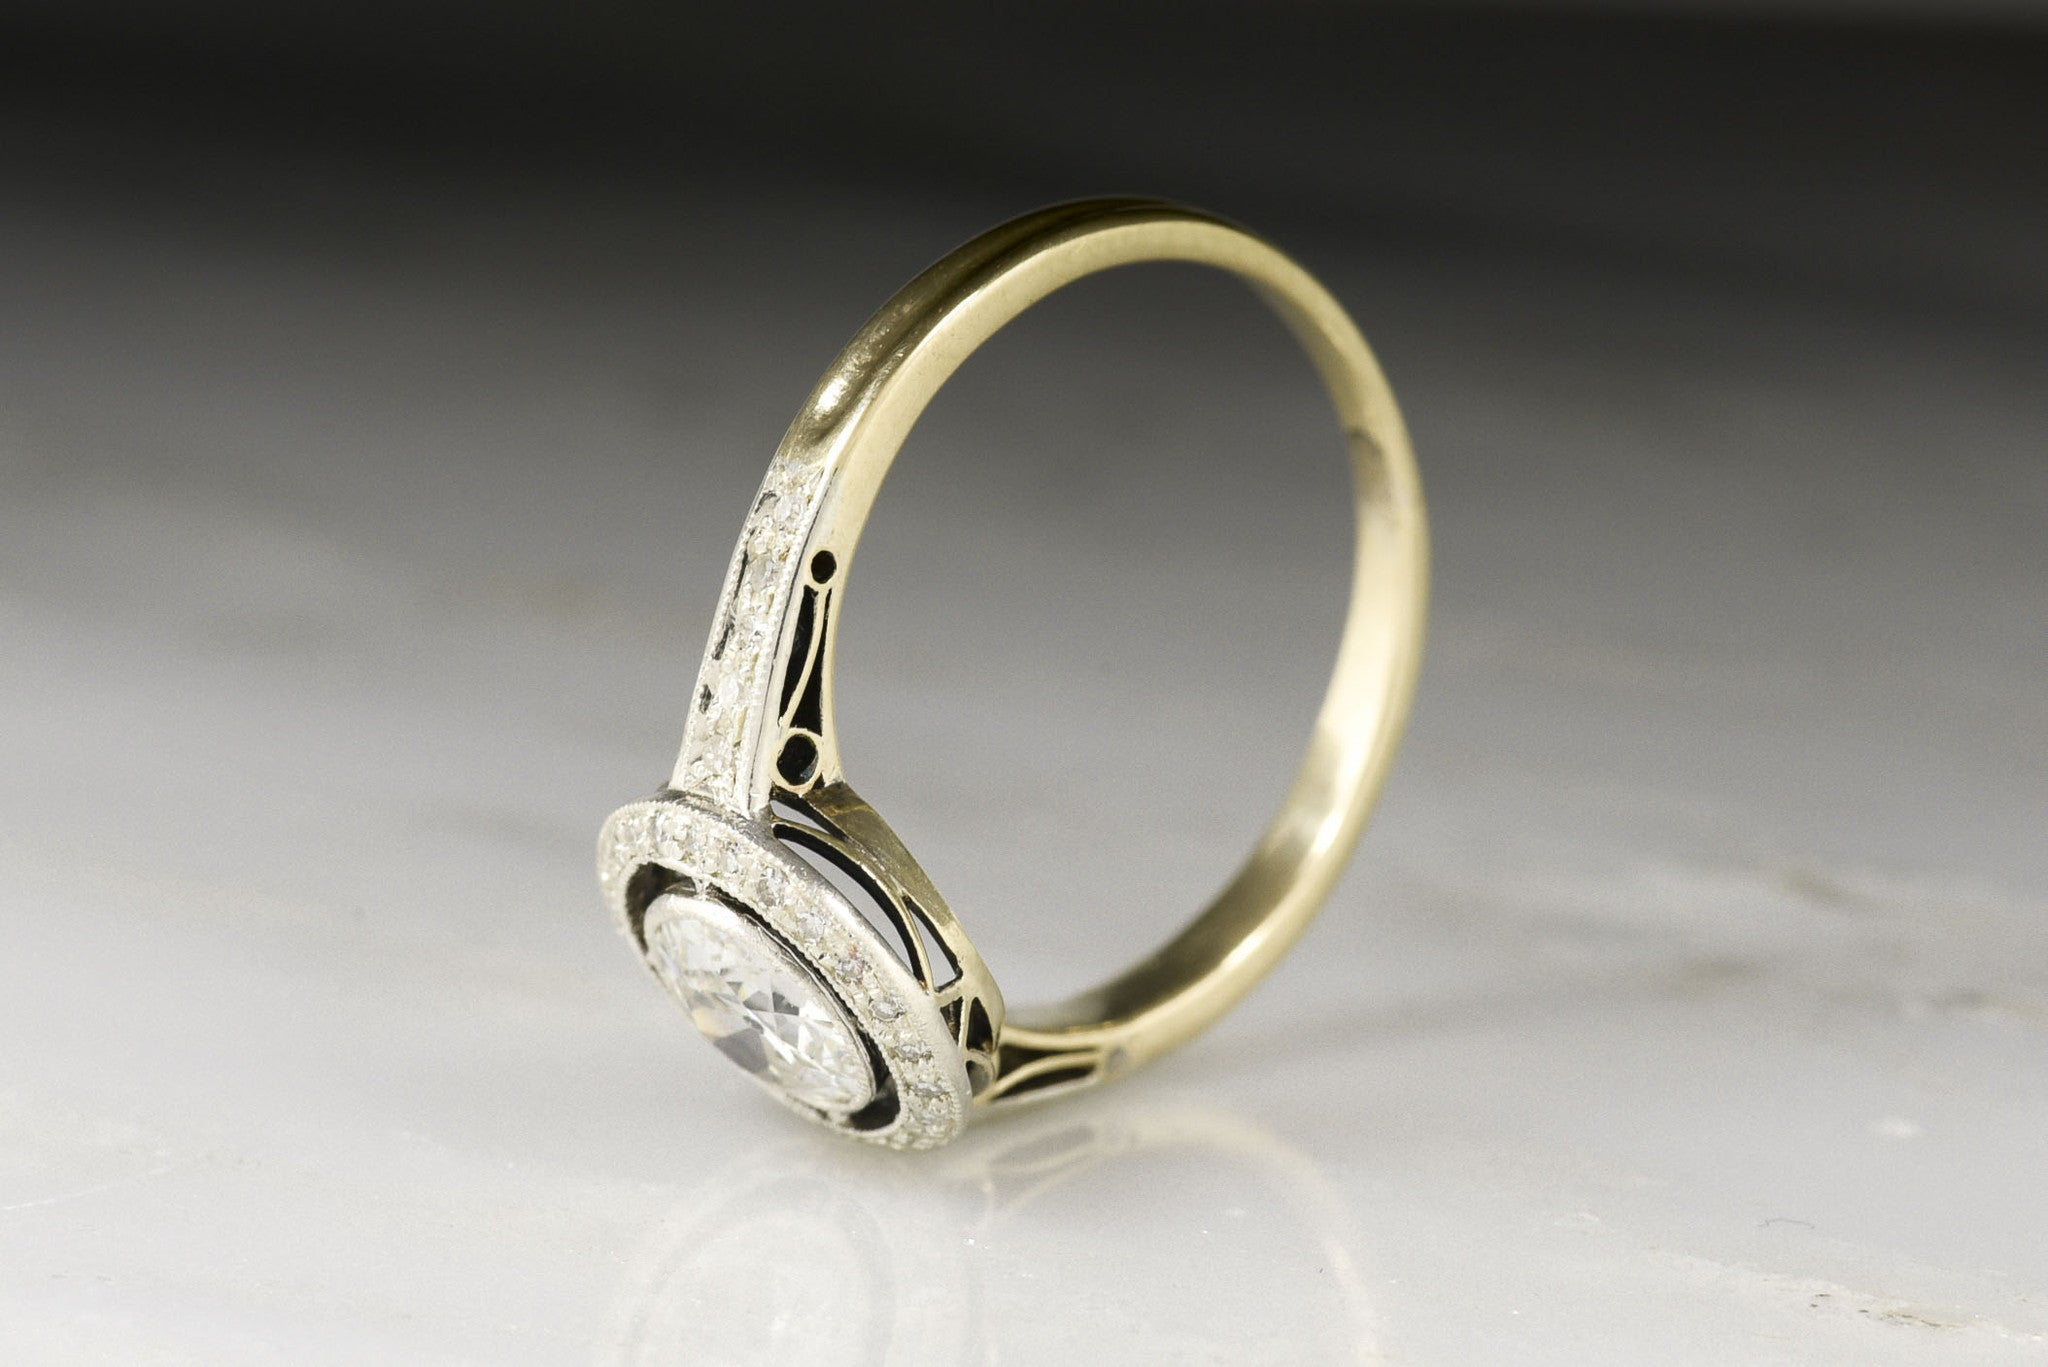 of style center and basket rings three stones jewelry oval picture profile side low wedding fine